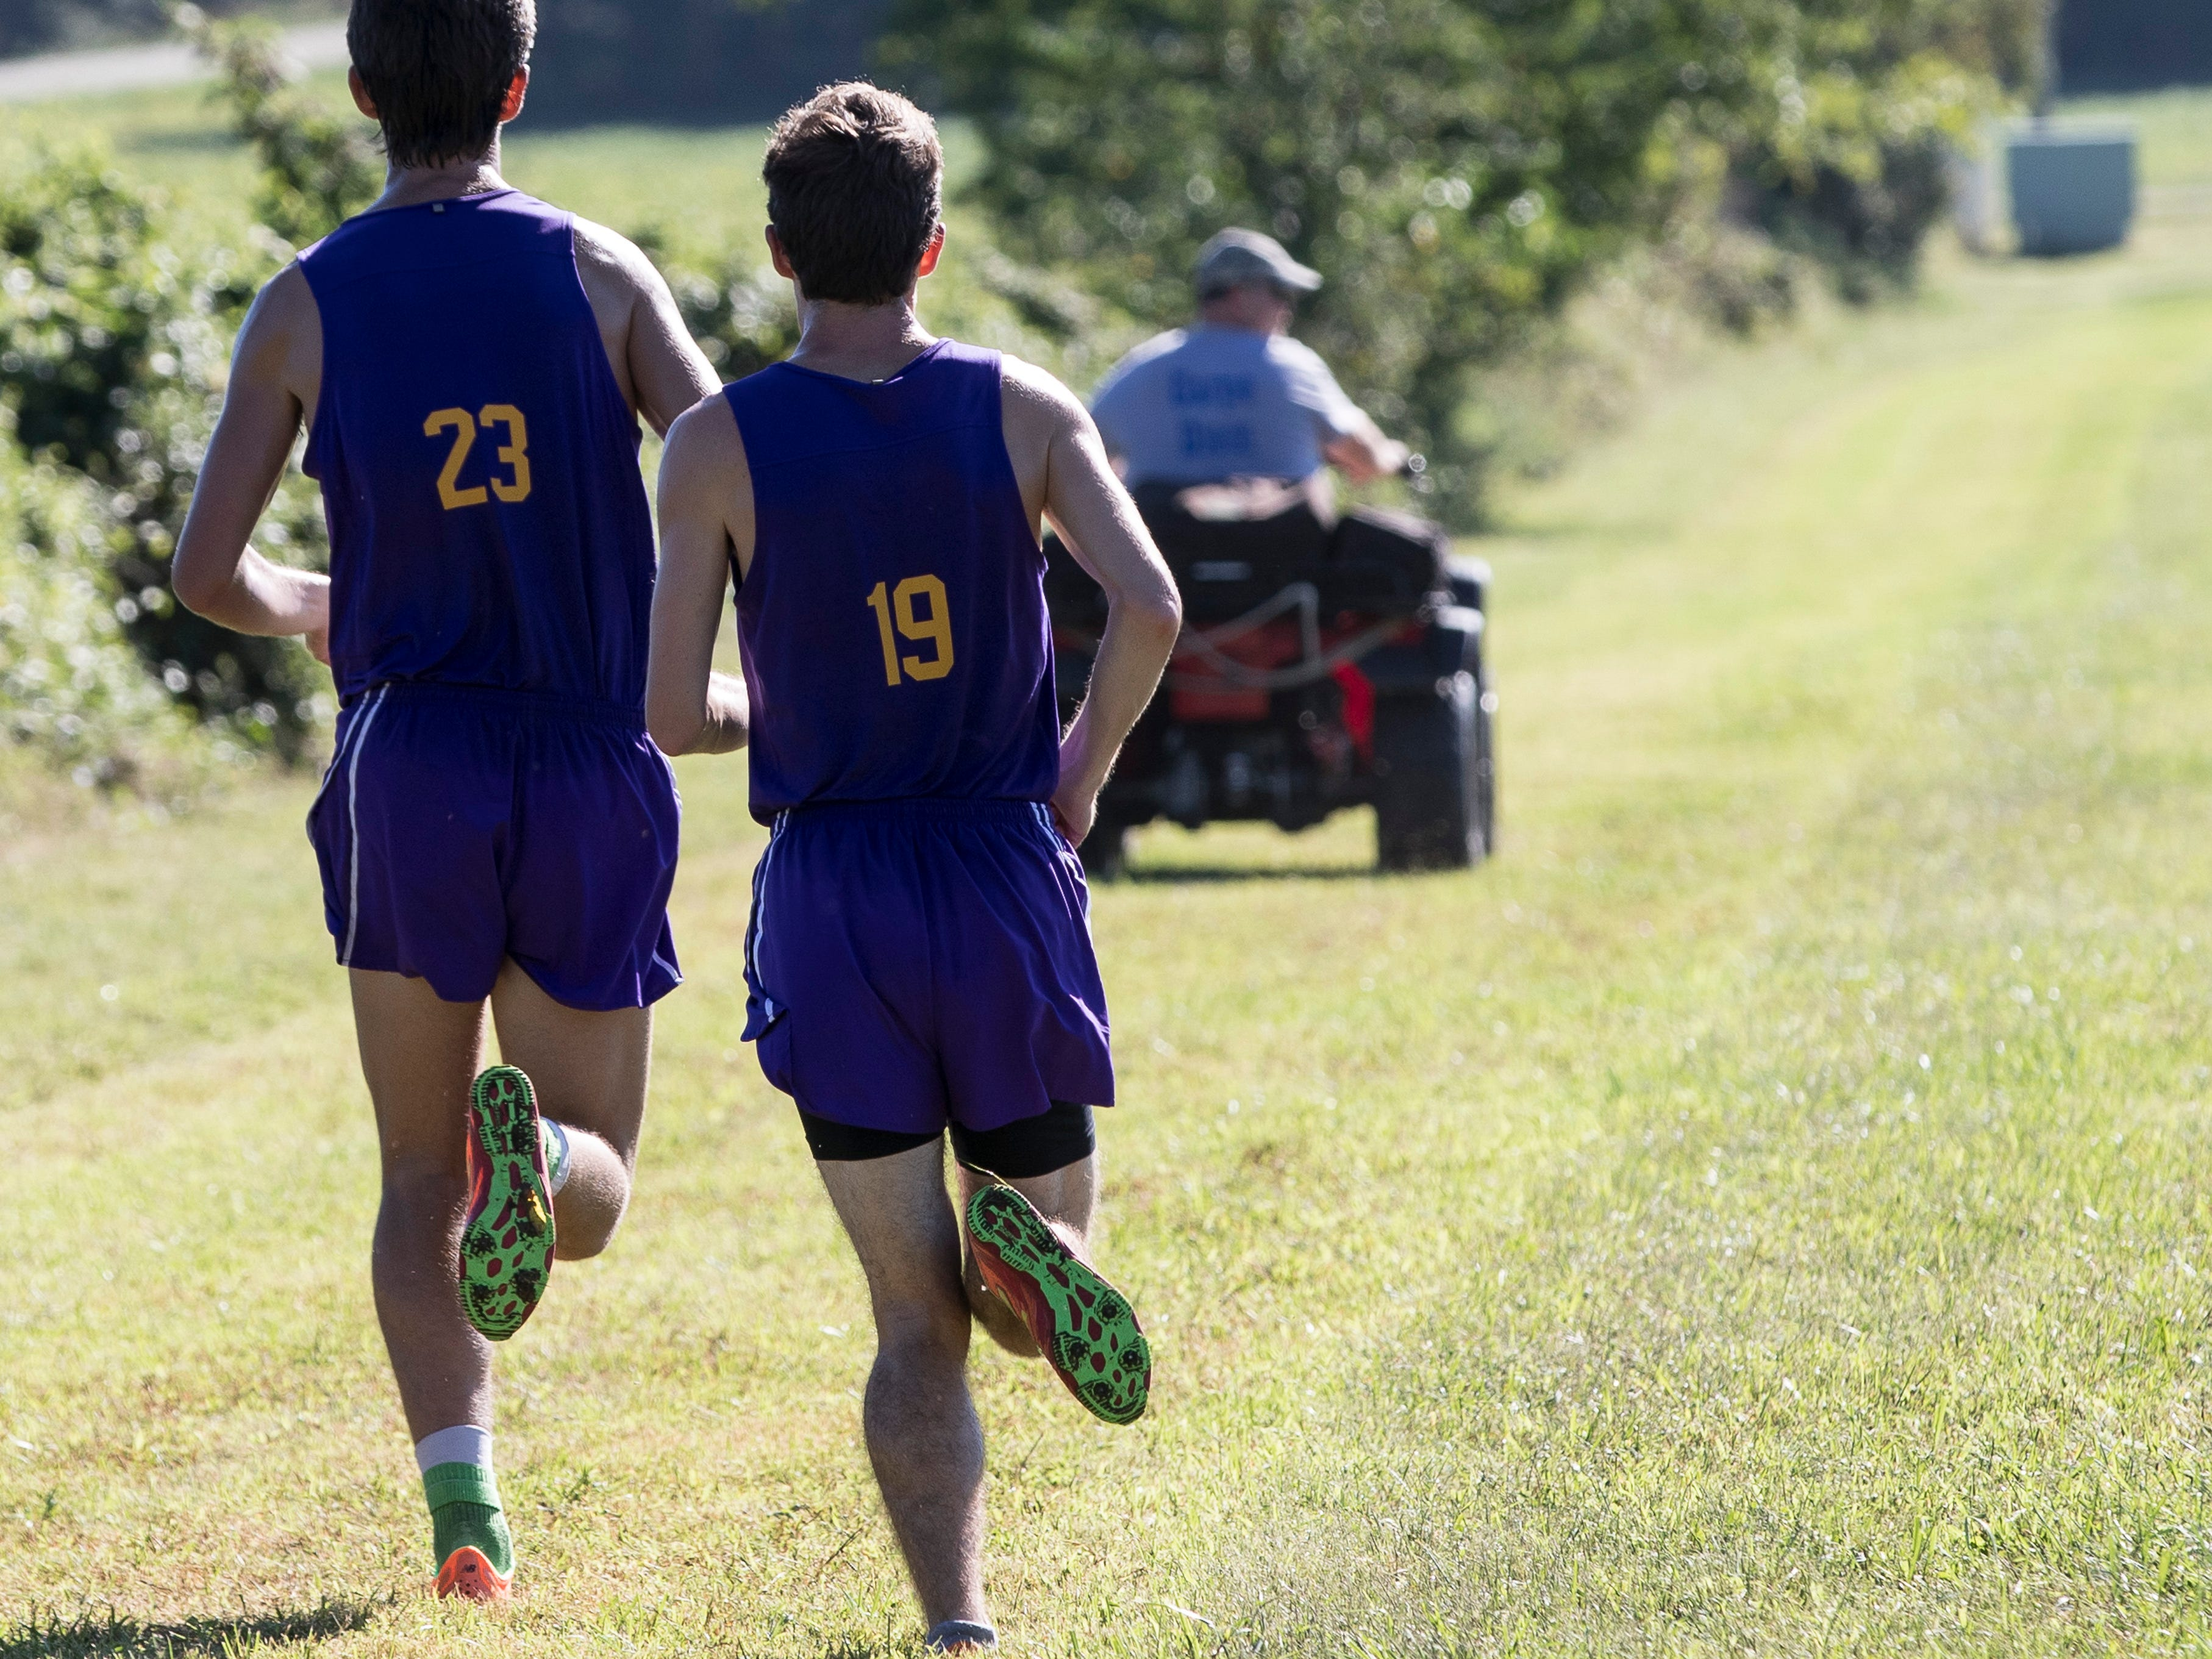 Unioto junior Eric Hacker, right, runs side by side with fellow teammate Tucker Markko at the 2018 Aaron Reed Memorial Invitational cross-country race where he took second place to Markko. While Hacker's bowed leg, a gait disorder left over from his cerebral palsy, is noticeable as he runs, it hasn't stopped him from becoming one of the top long-distance runners in the area.